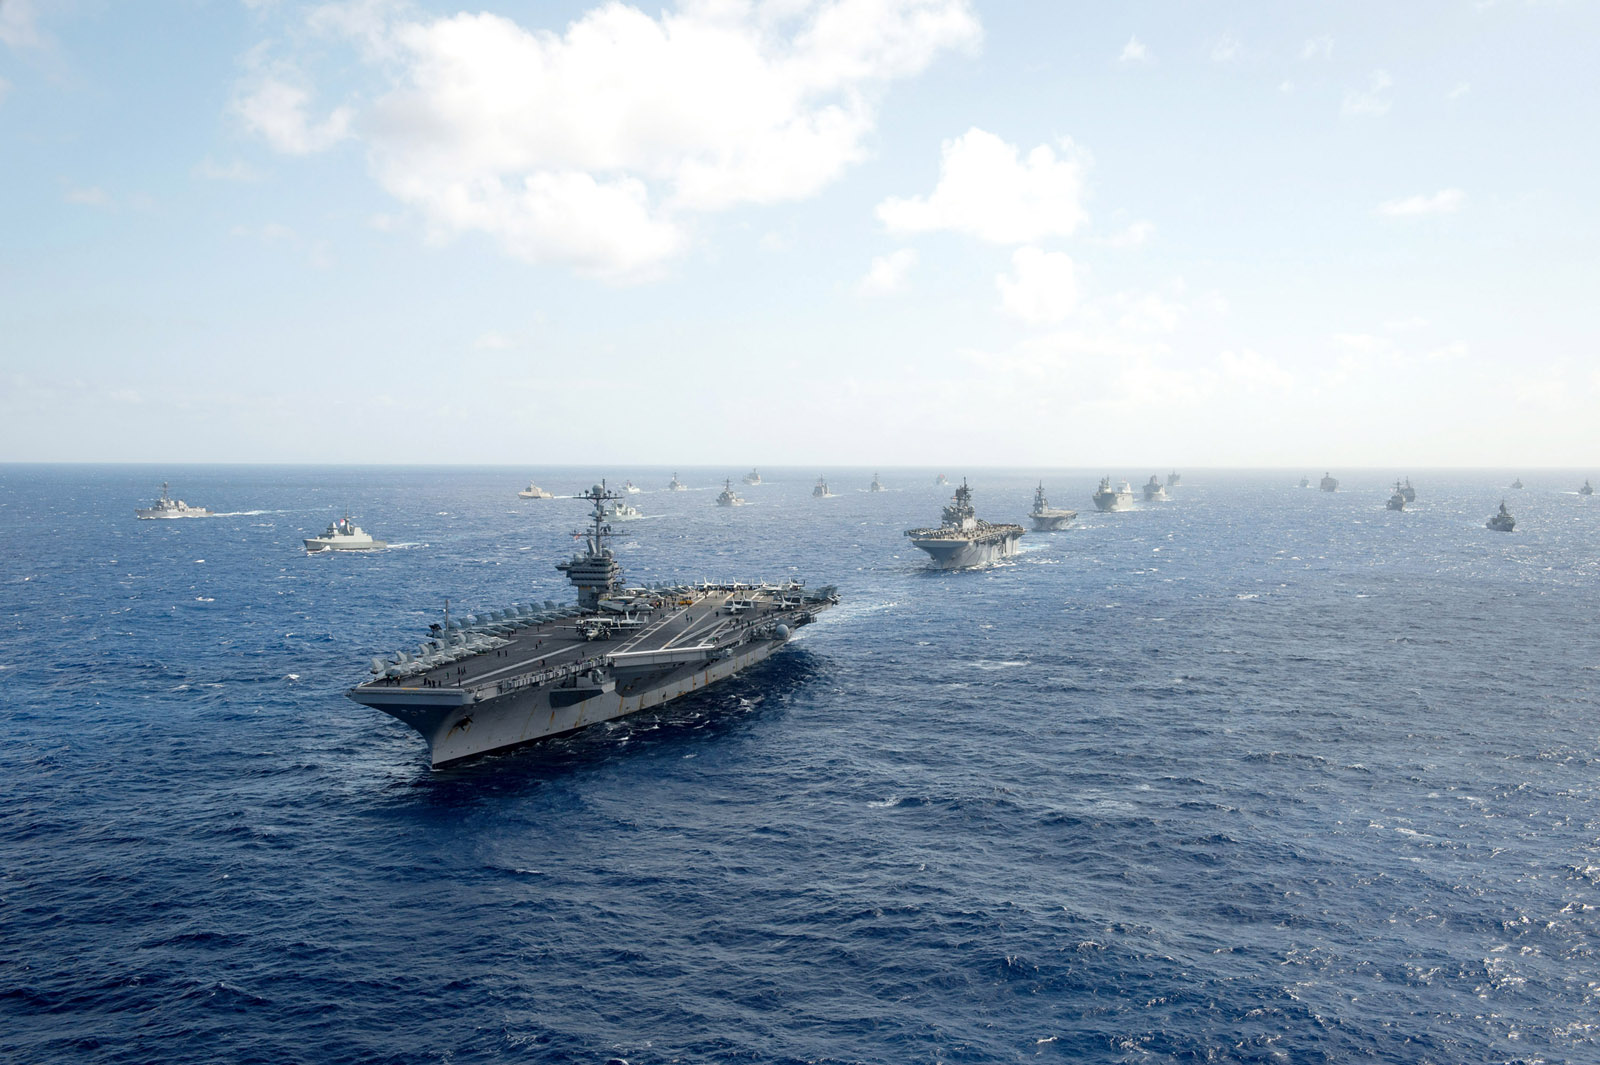 Ships from RIMPAC 2016